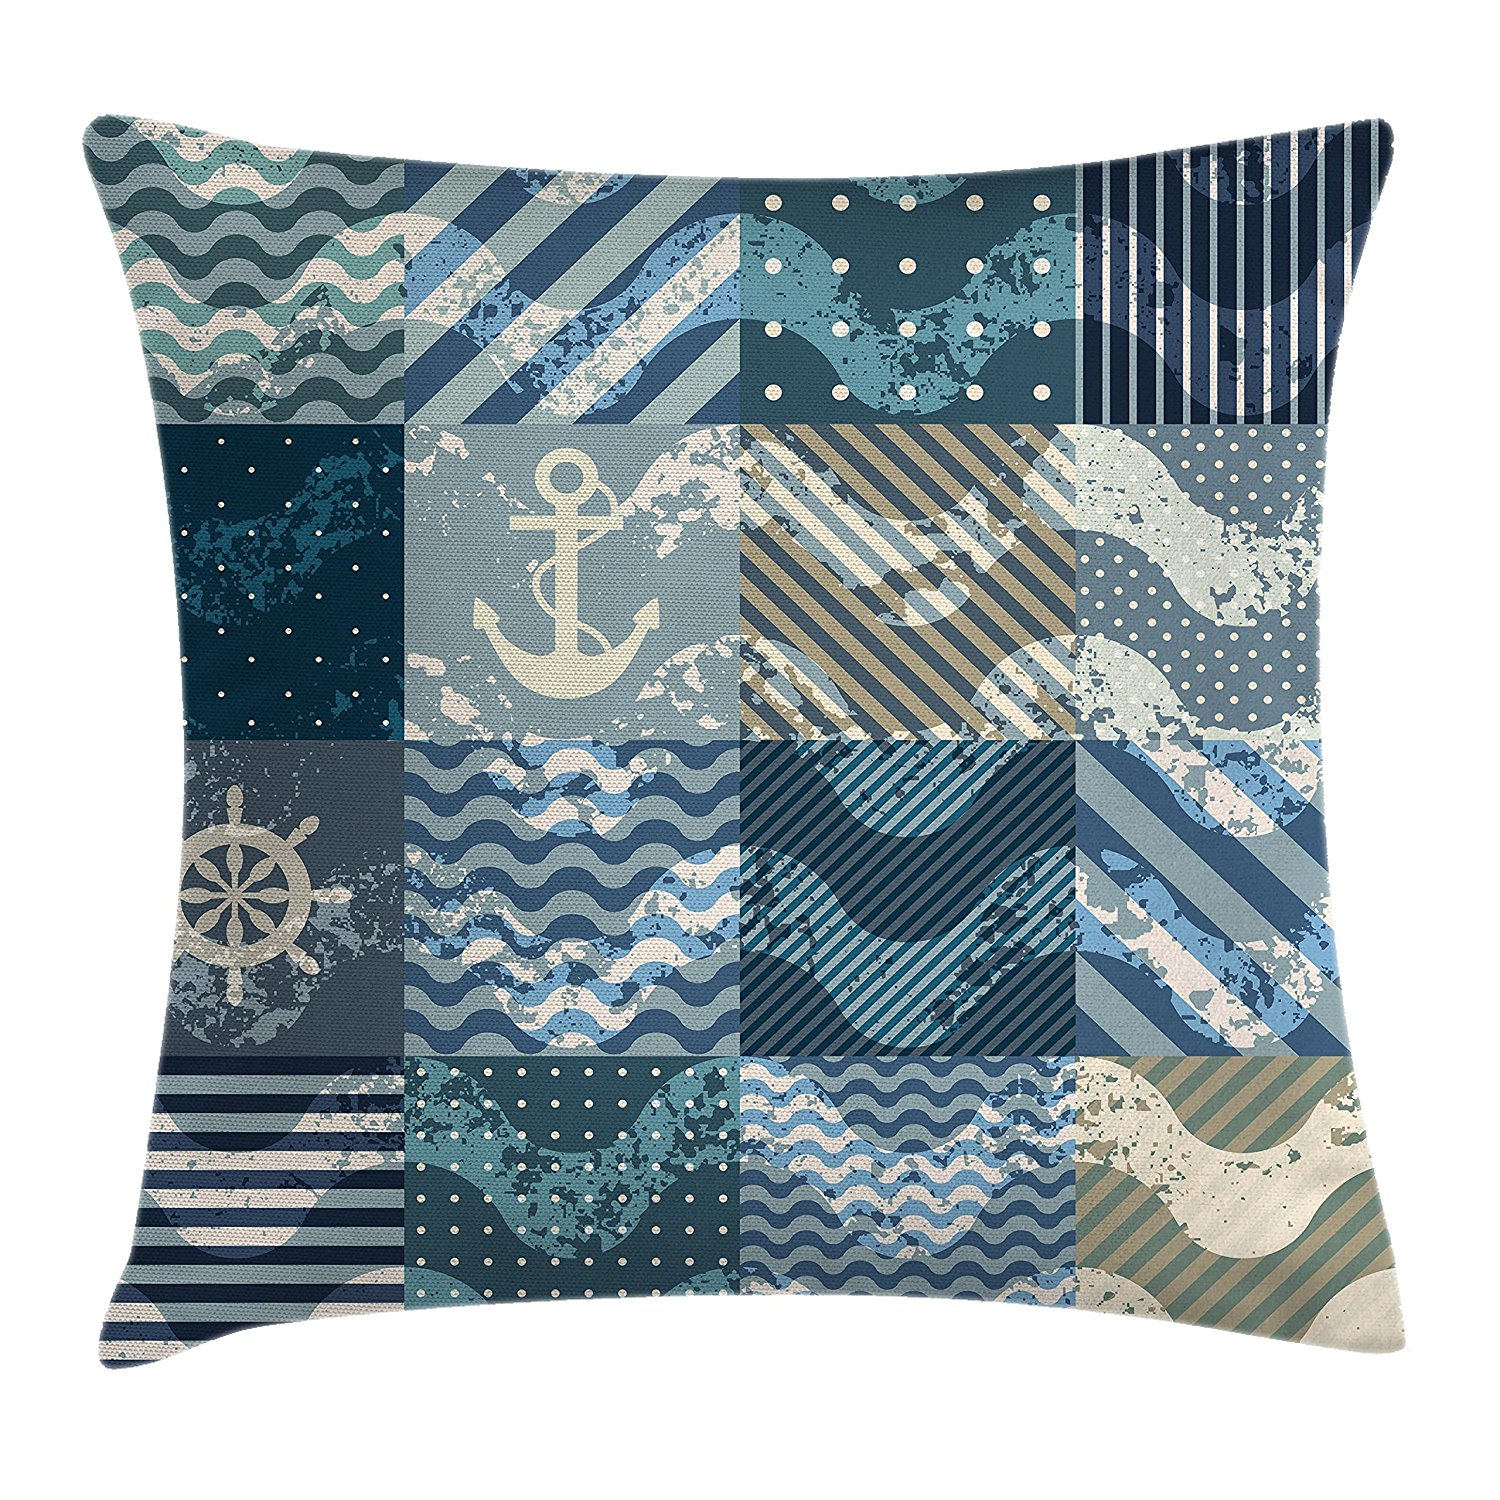 Ambesonne Nautical Decor Throw Pillow Cushion Cover, Marine Wave Patterns in Patchwork Style Boxes Squares Navy Striped Print, Decorative Square Accent Pillow Case, 24 X 24 Inches, Blue Beige